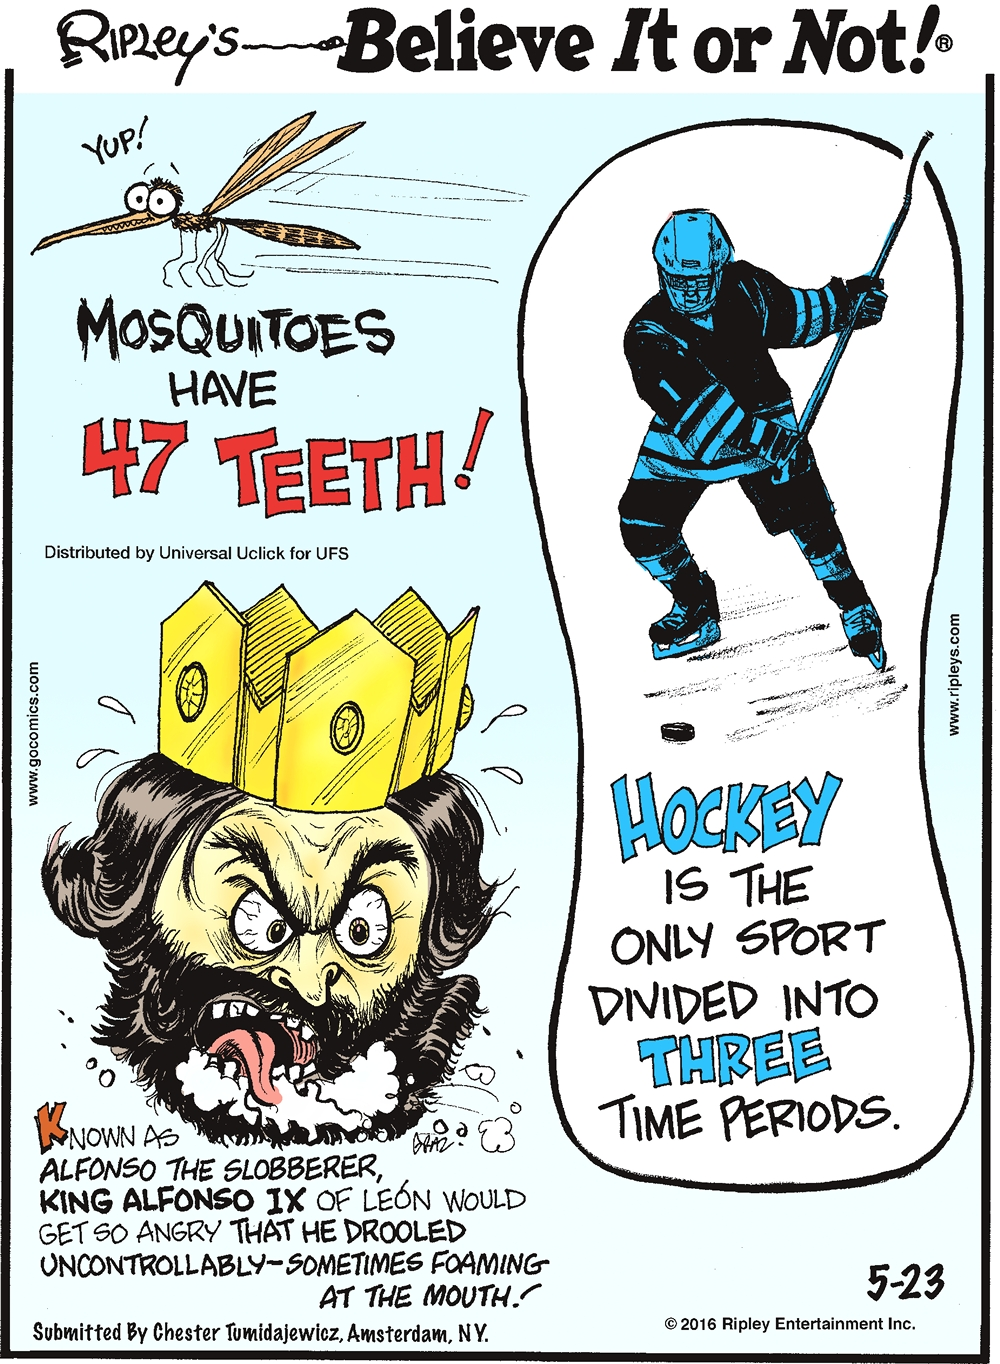 Mosquitoes have 47 teeth! -------------------- Known as Alfonso the Slobberer, King Alfonso IX of Leon would get so angry that he drooled uncontrollably—sometimes foaming at the mouth! Submitted by Chester Tumidajewicz, Amsterdam, NY. -------------------- Hockey is the only sport divided into three time periods.